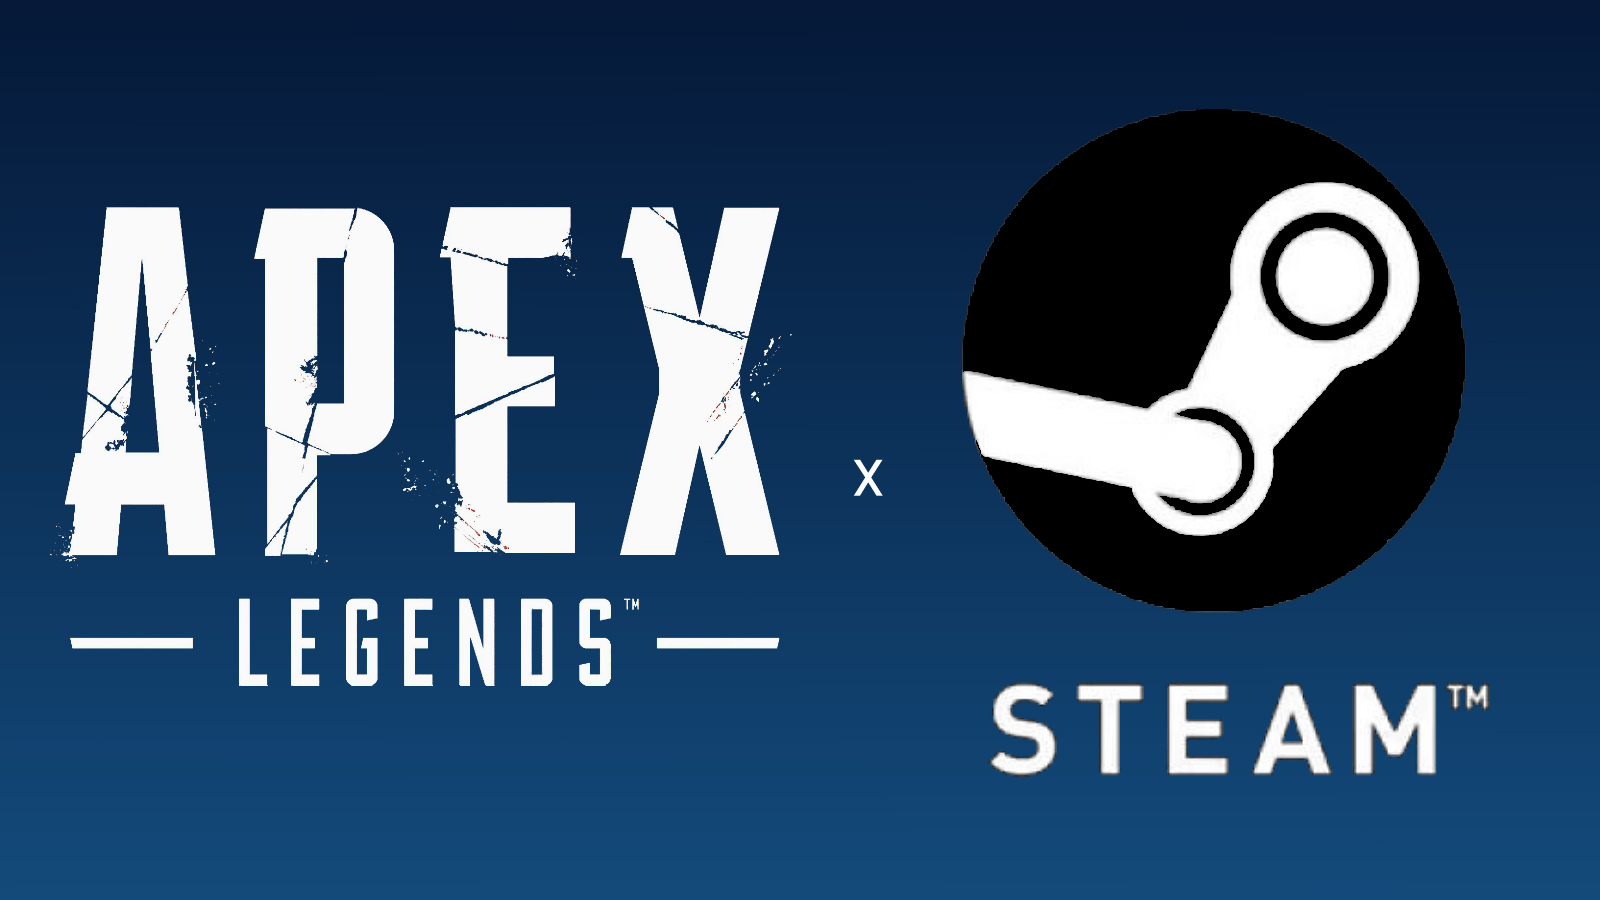 Apex Legends and Steam logos on blue background